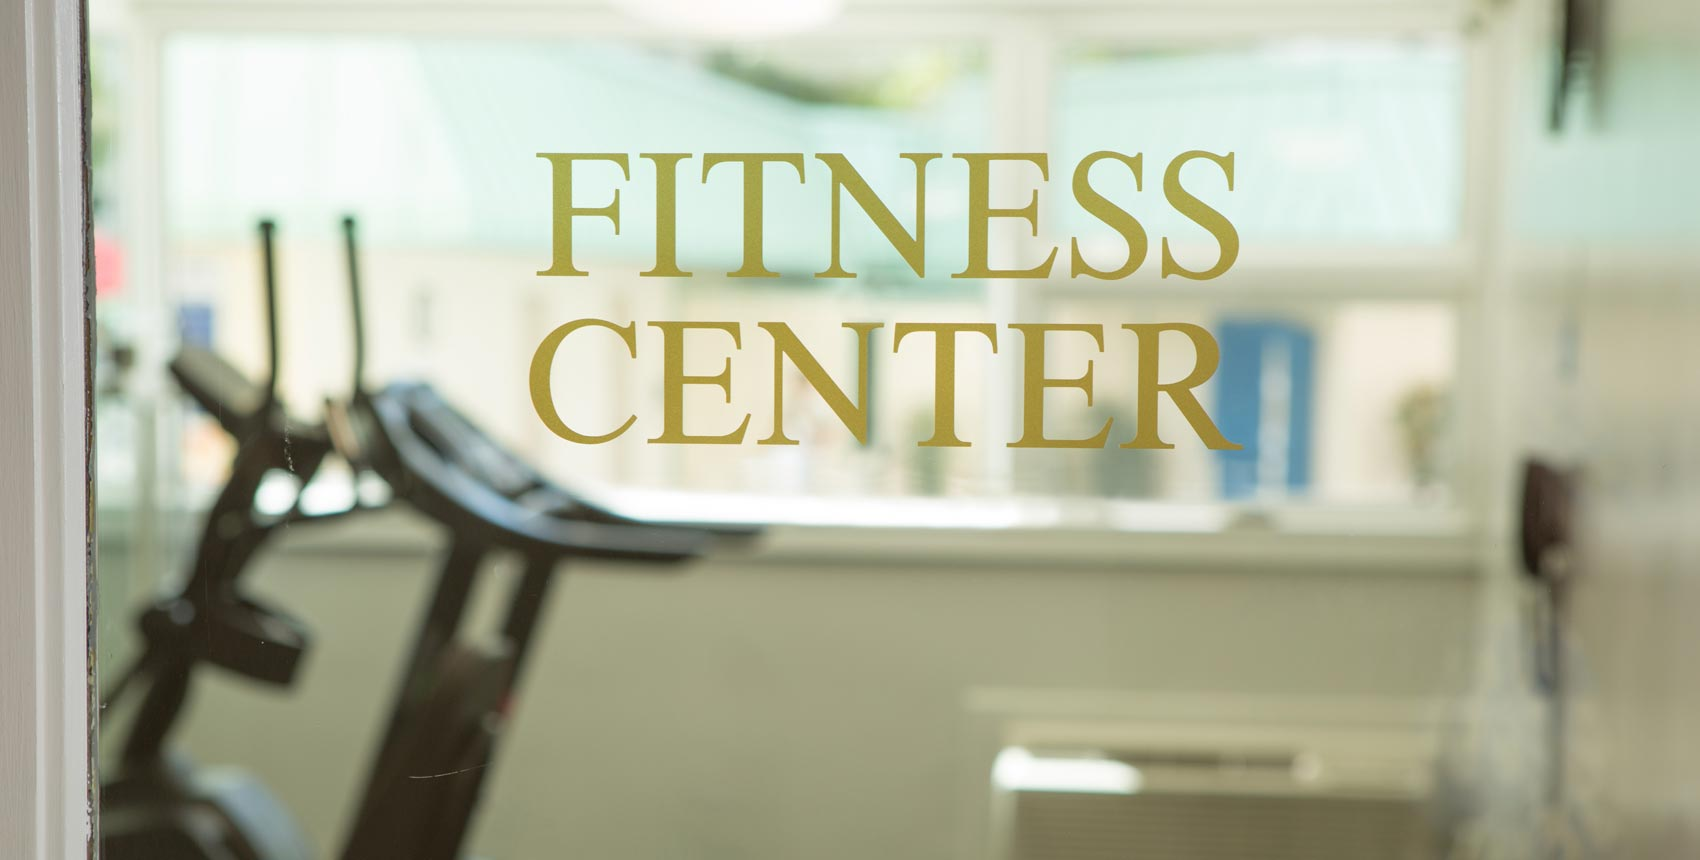 fitness_center_sign